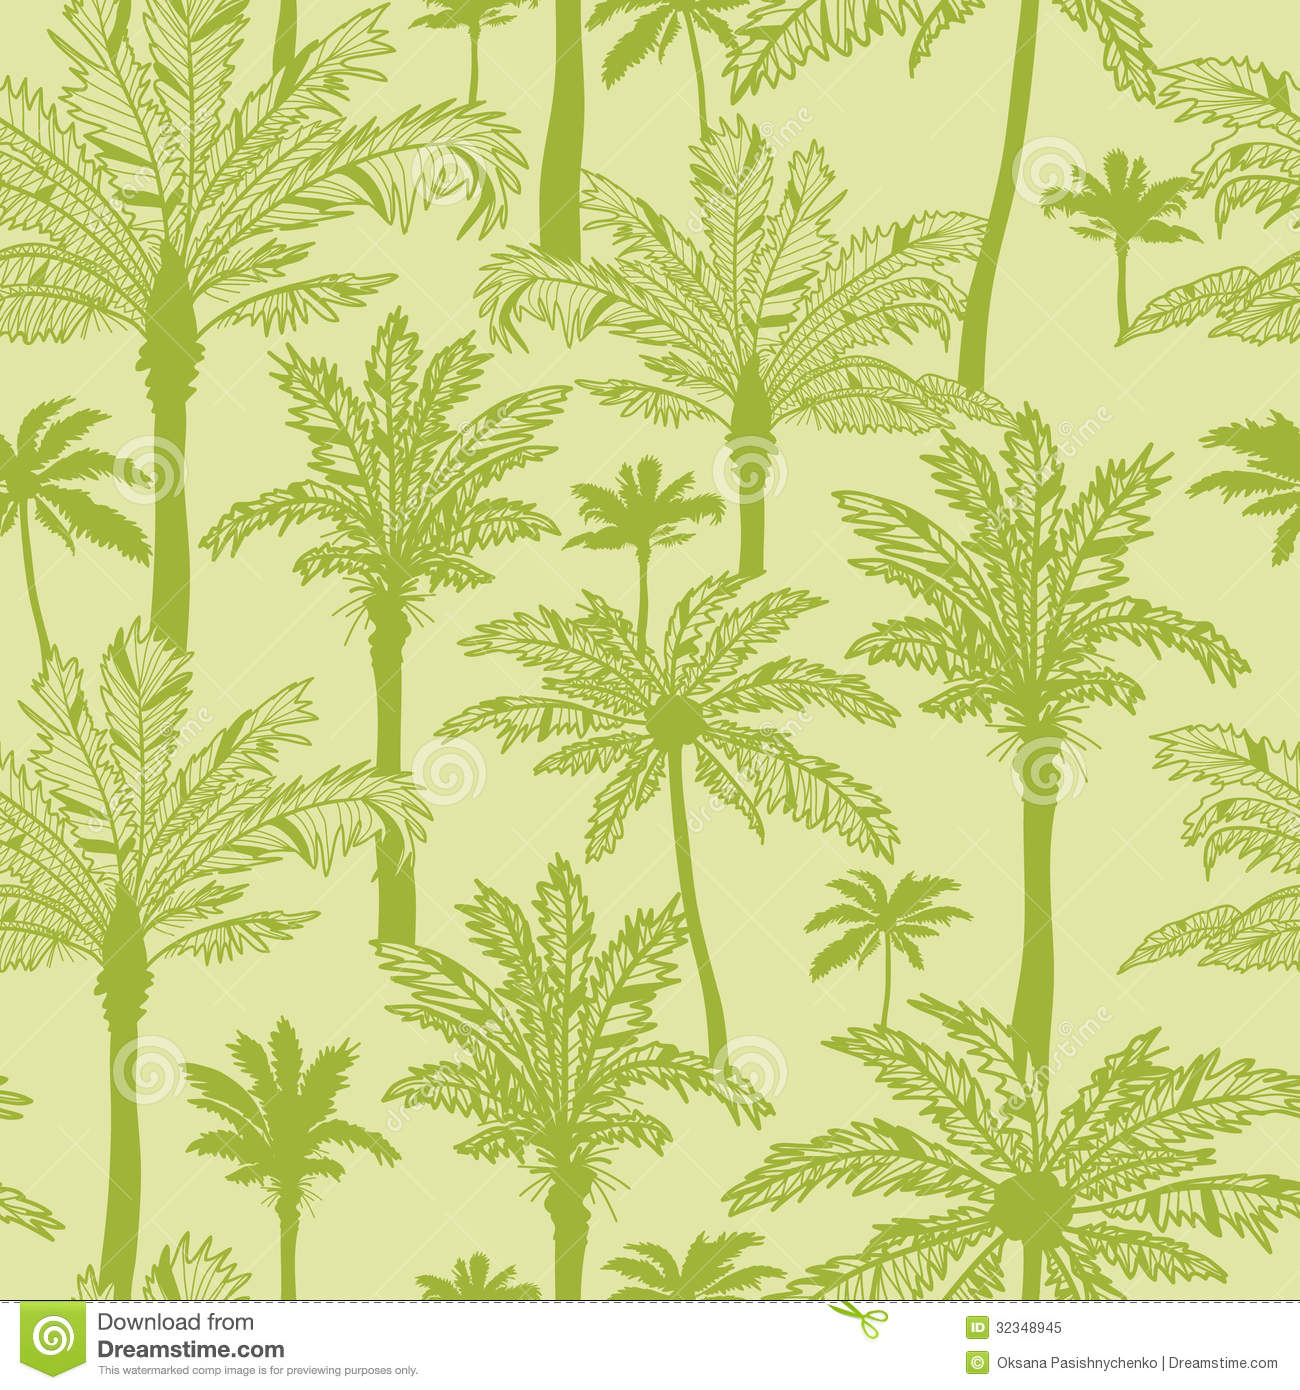 green palm trees seamless pattern background royalty free stock